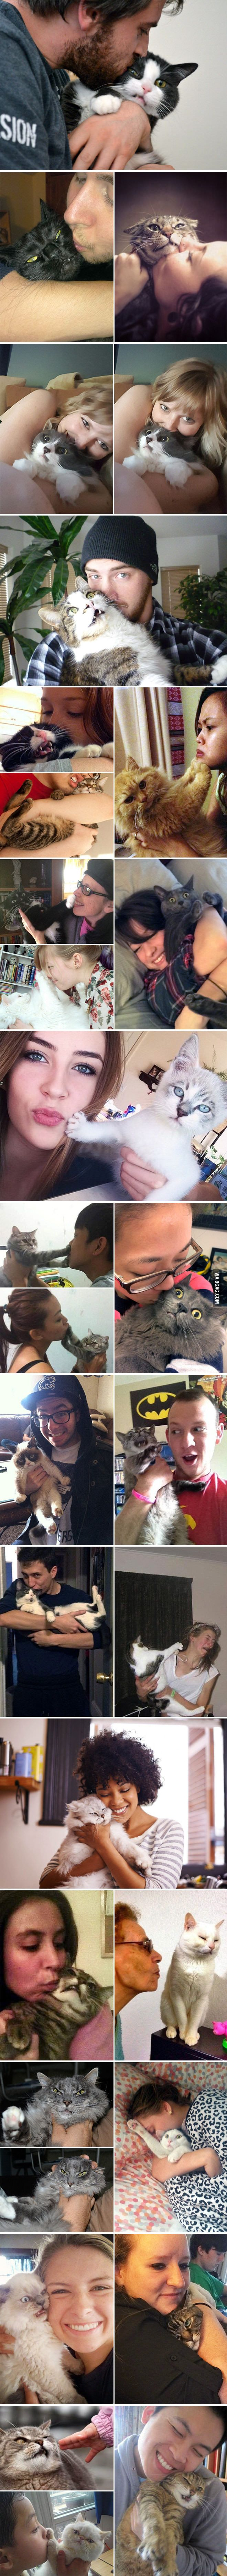 These cats are not really in the mood of cuddling...